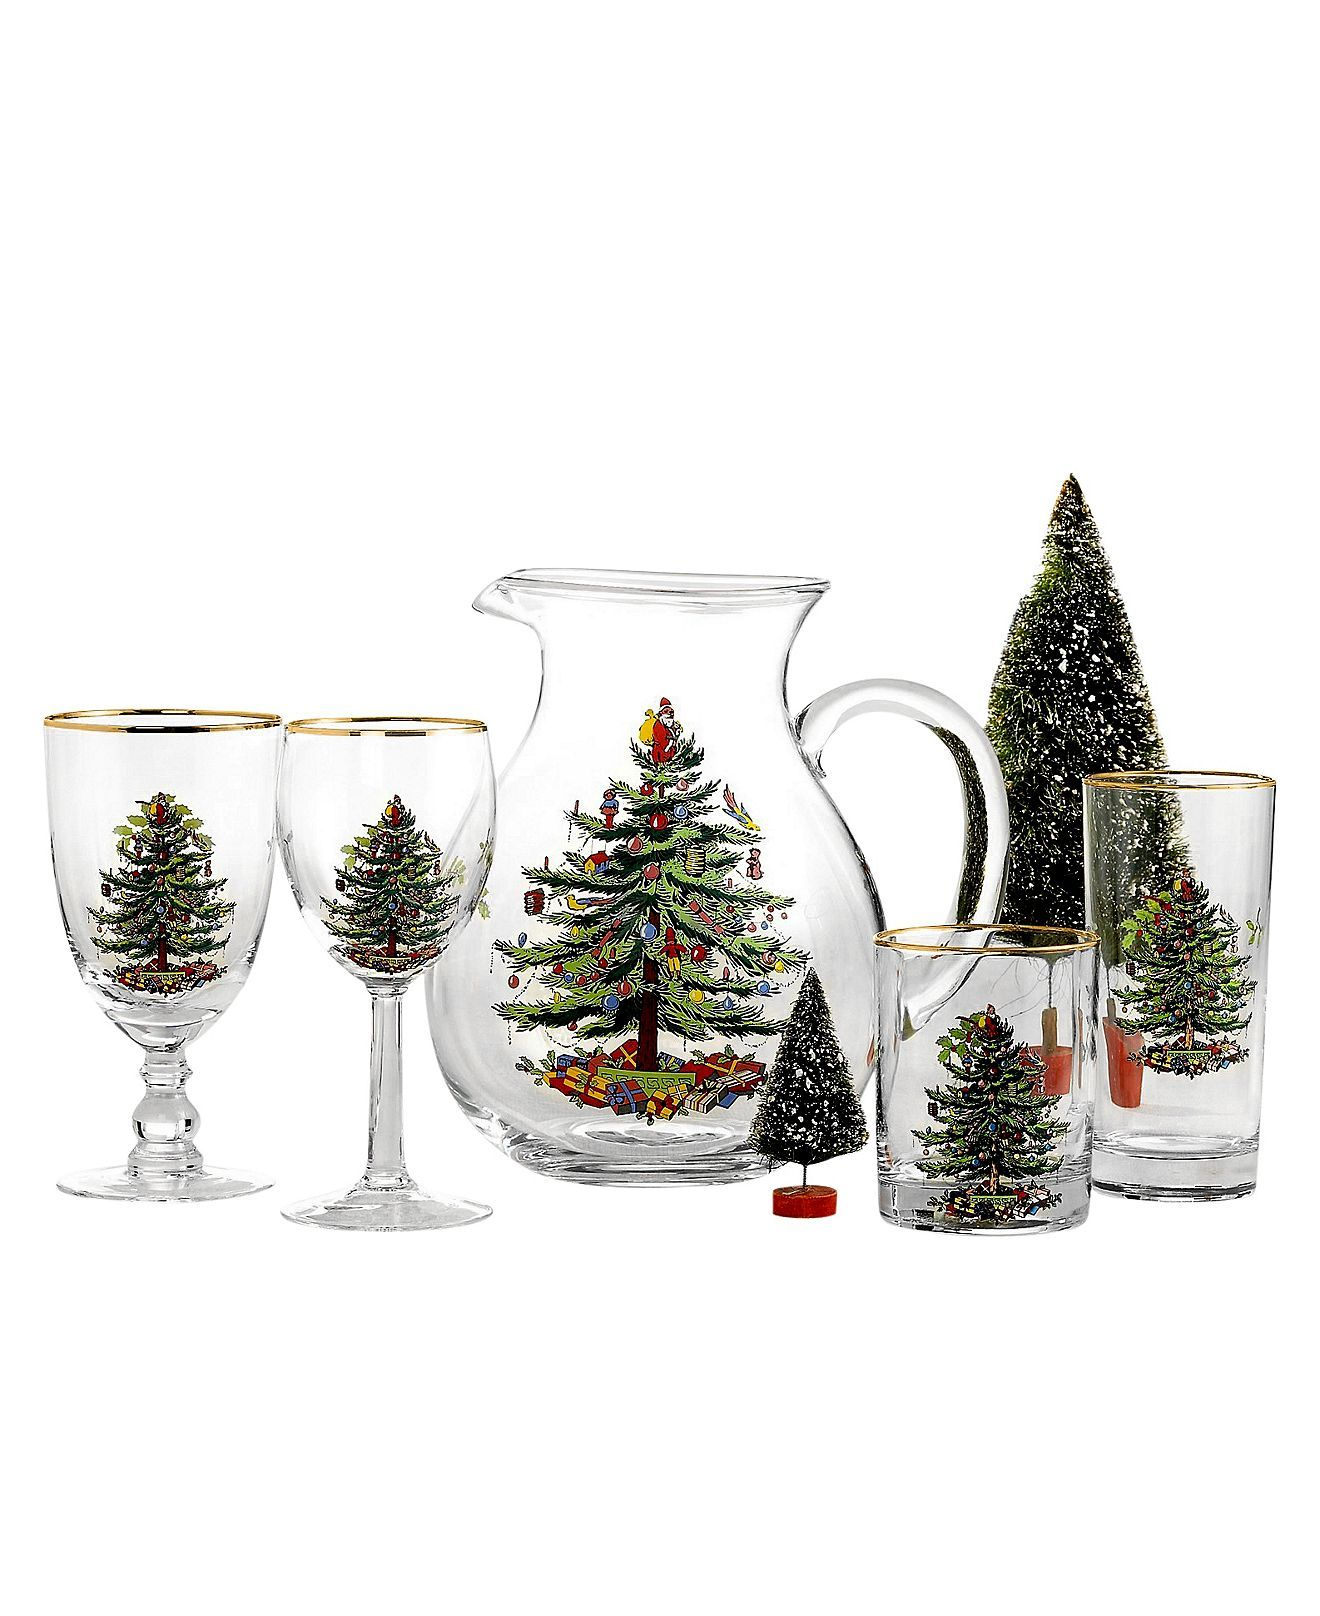 Spode - In Love X'mas Luxury Table Christmas